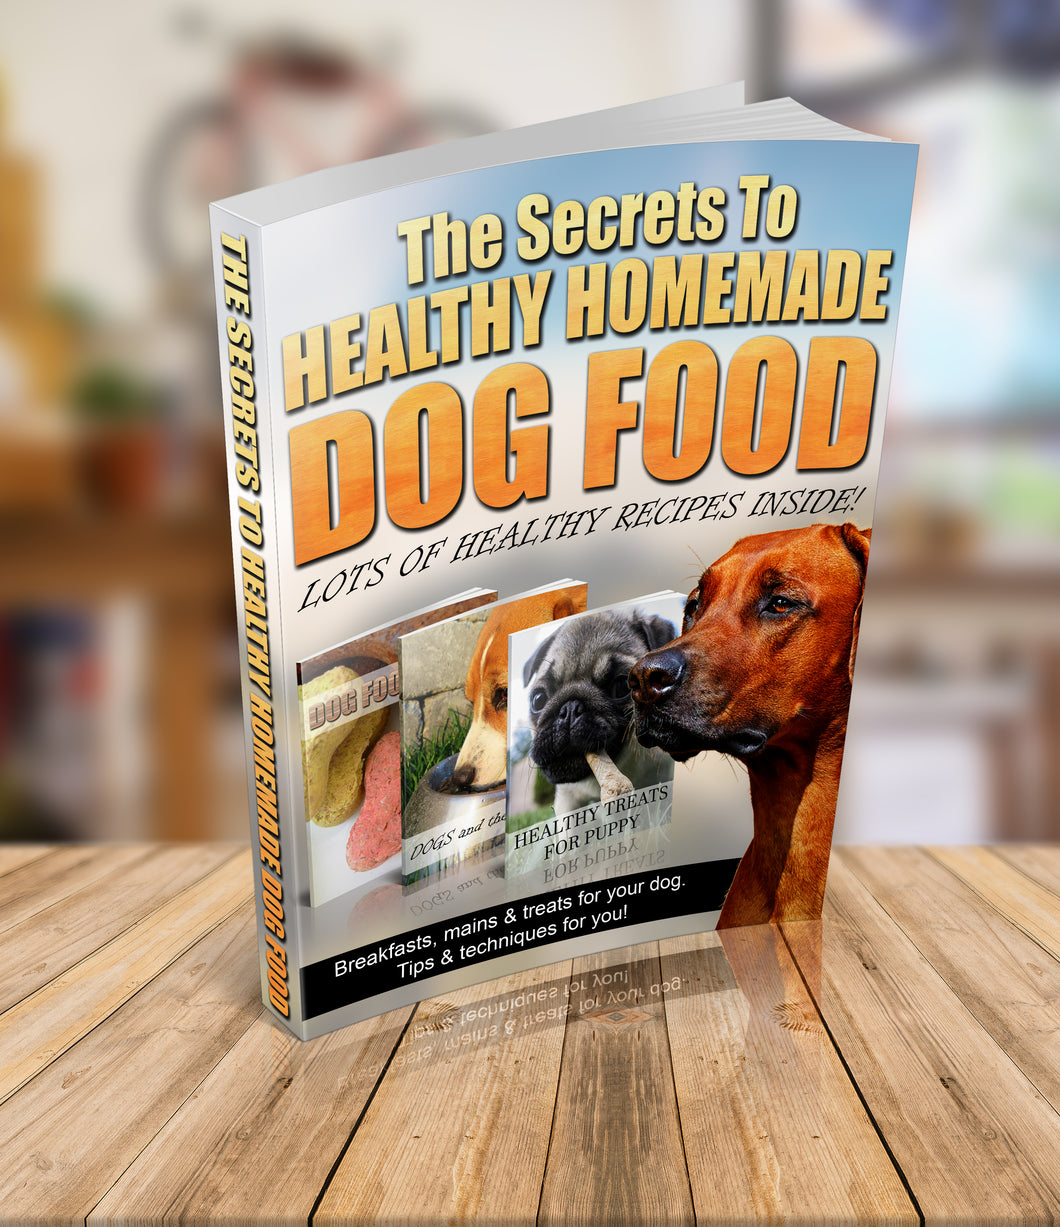 Healthy homemade dog food recipes ebook sale wendy sales healthy homemade dog food recipes ebook sale forumfinder Image collections